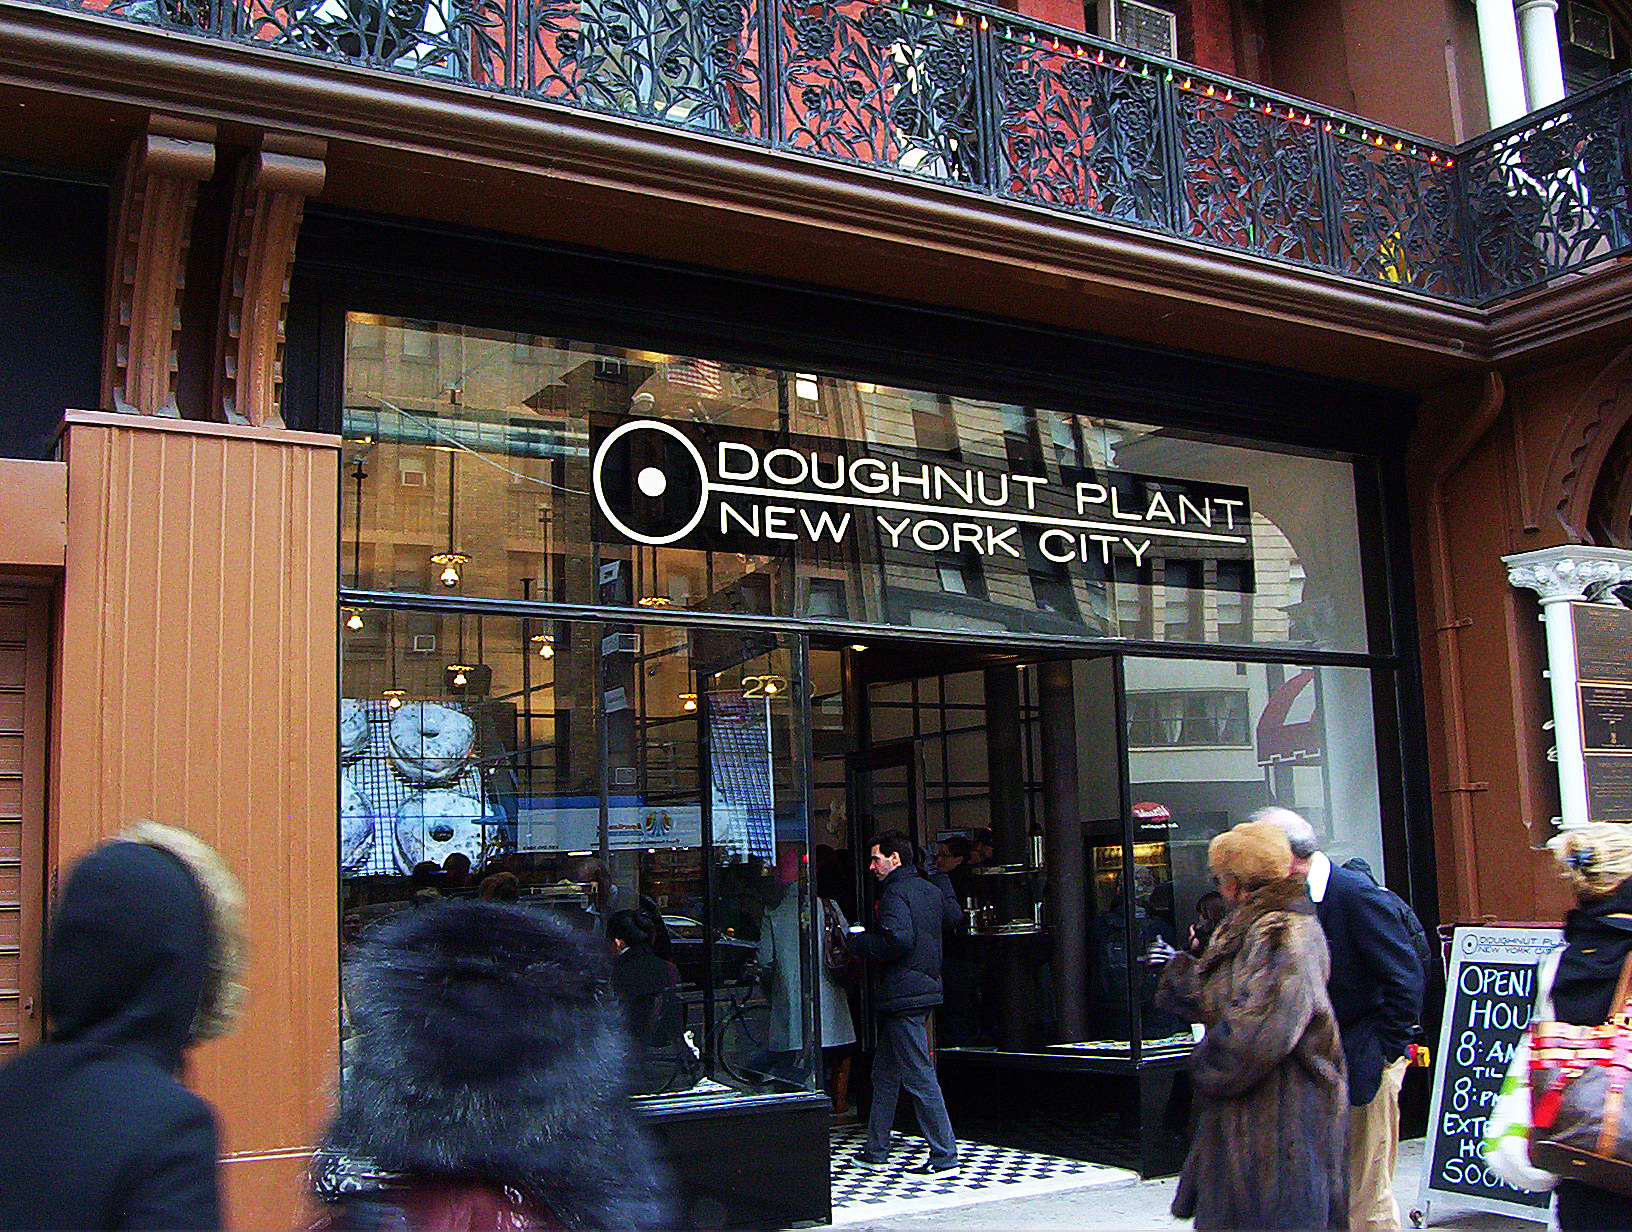 Old For Doughnut Plant Nyc Lotus Editions Doughnut Plant Nyc Calories Doughnut Plant Nyc News nice food Doughnut Plant Nyc